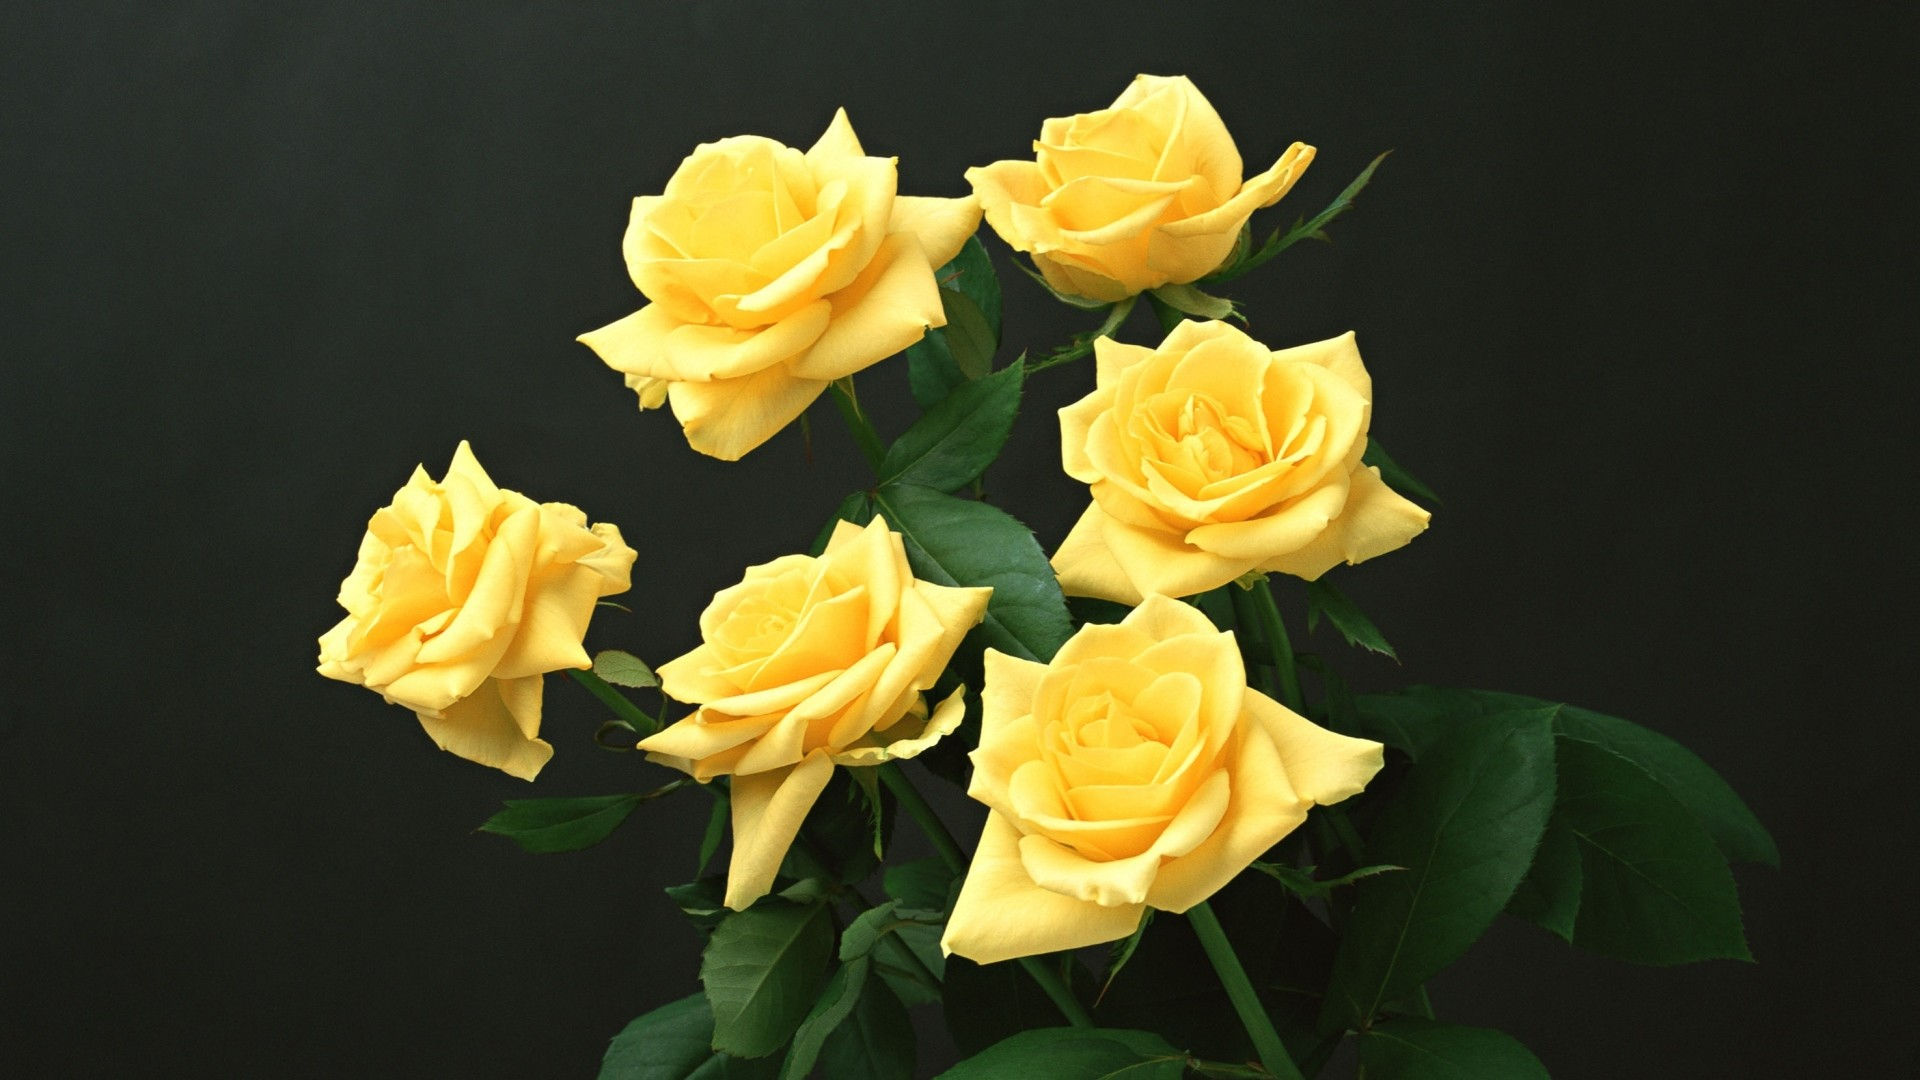 Wallpaper yellow, roses, black background, flowers